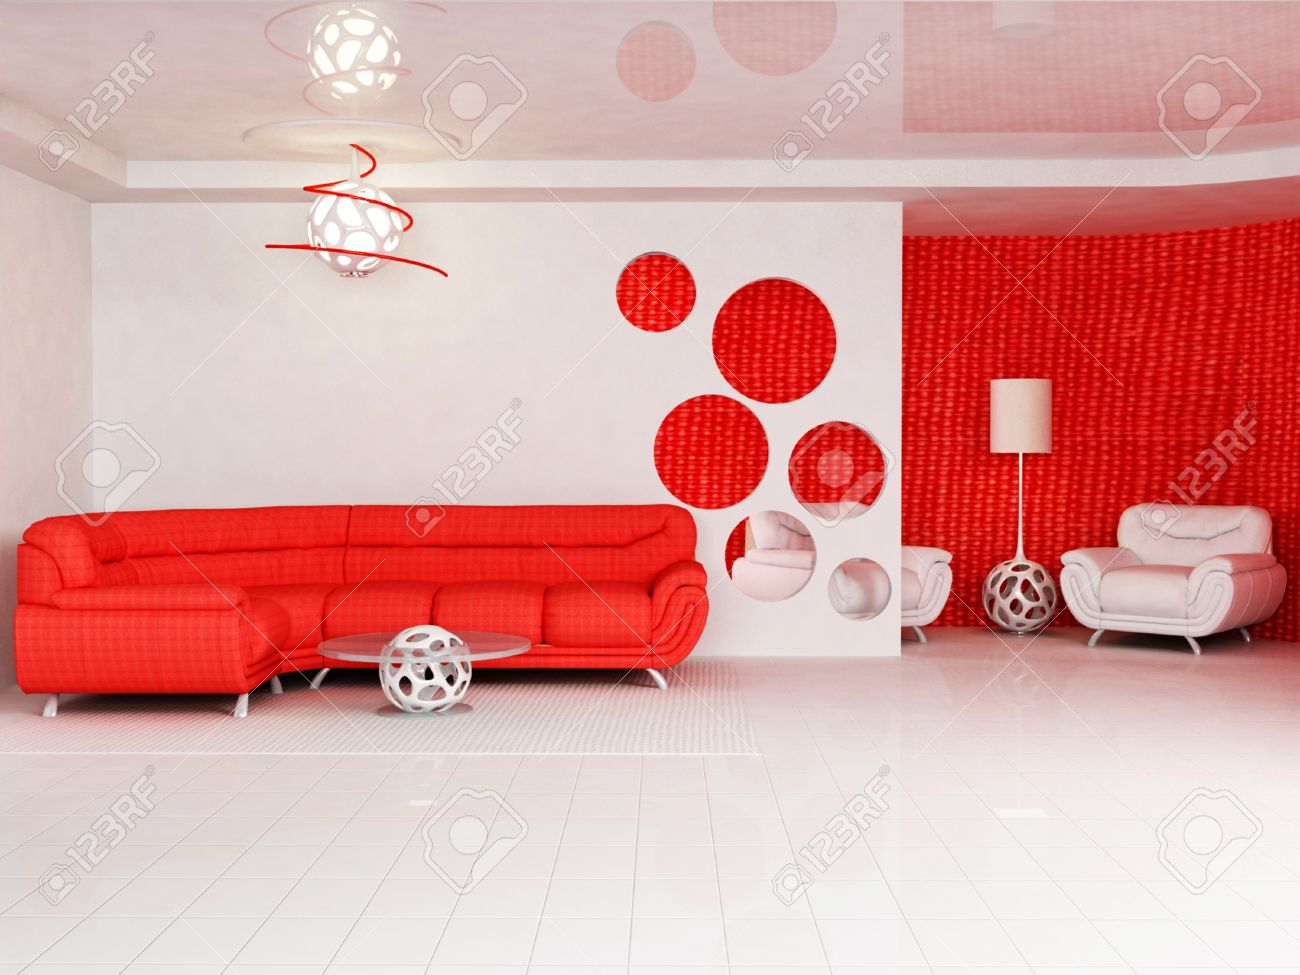 Modern Interior Design Of Living Room With A Bright Red Sofa ...